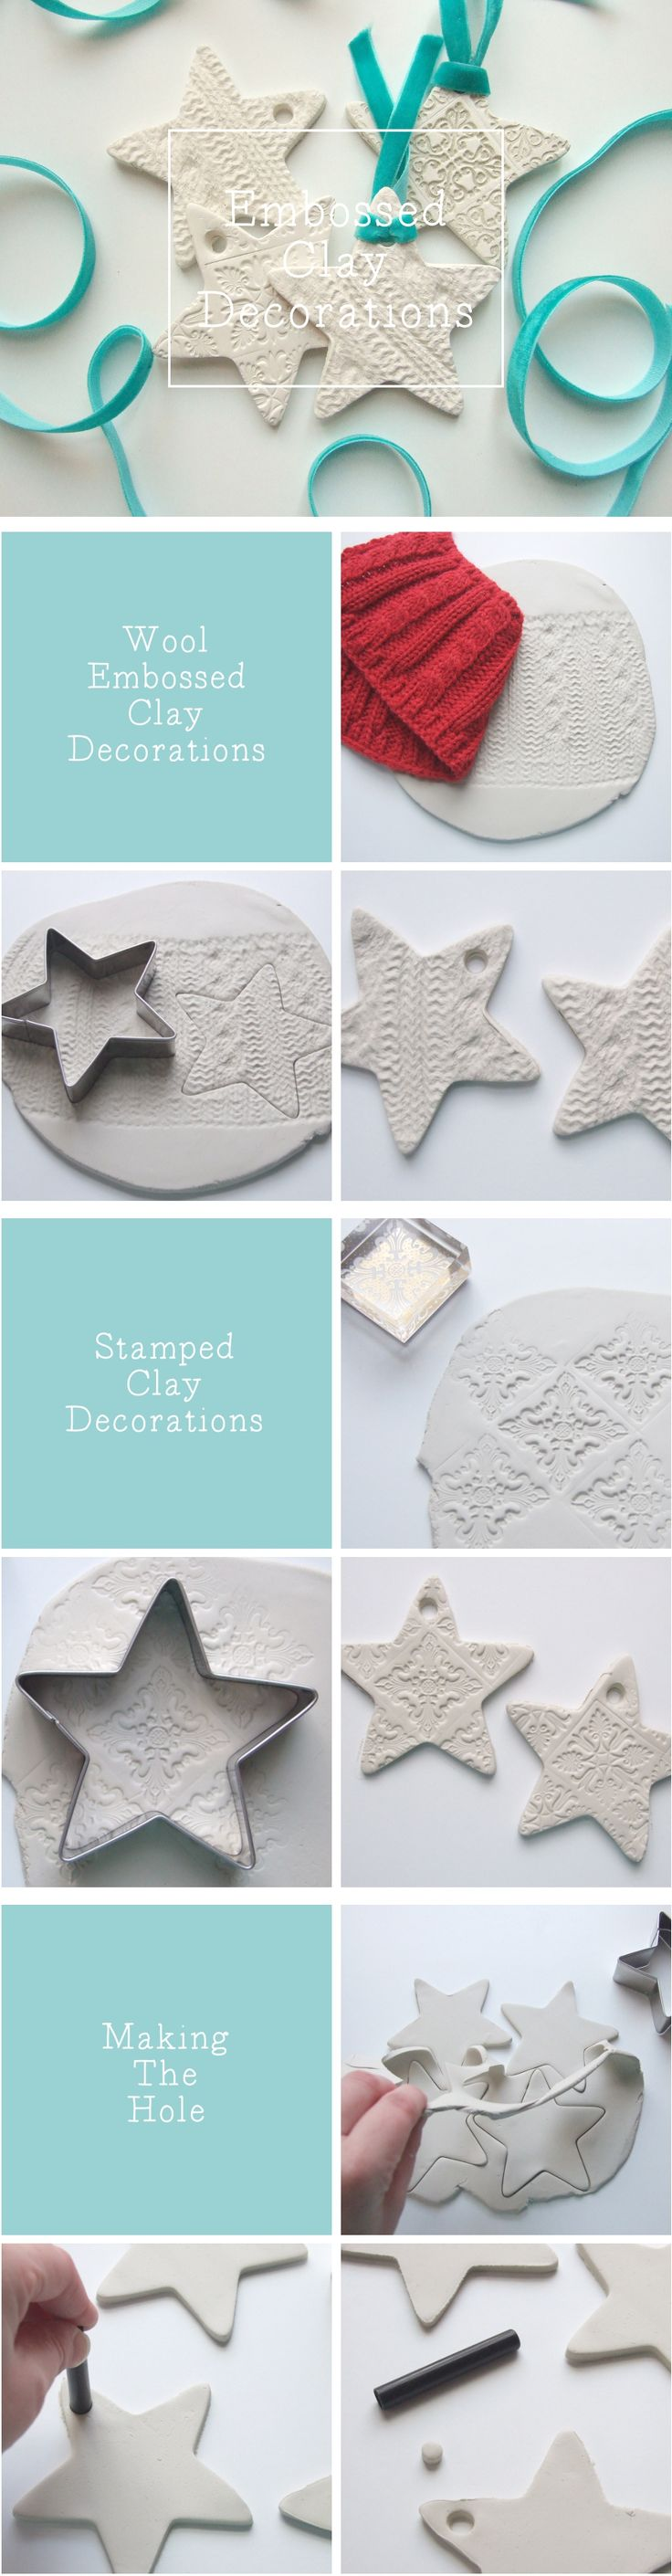 Embossed clay star christmas decorations made using air dry clay. Polymer clay could also be used for these. #Christmas #Xmas #Crafts #Handmade #PolymerClay #Polymer #Clay #Fimo